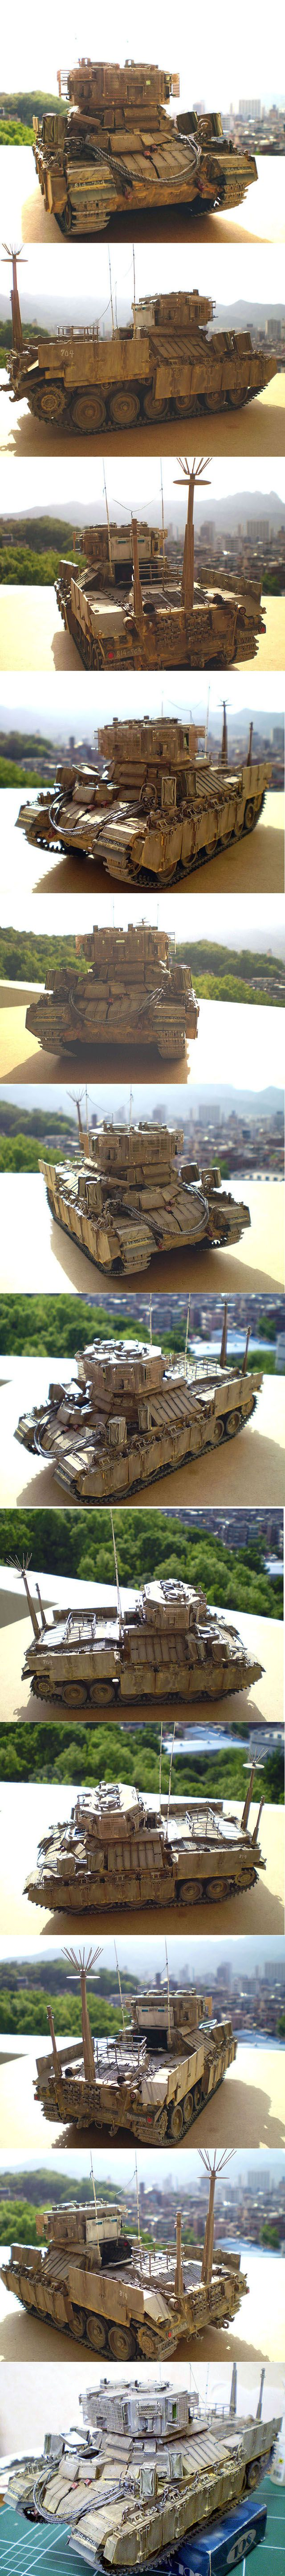 IDF Nagmachon 1/35 Scale Model